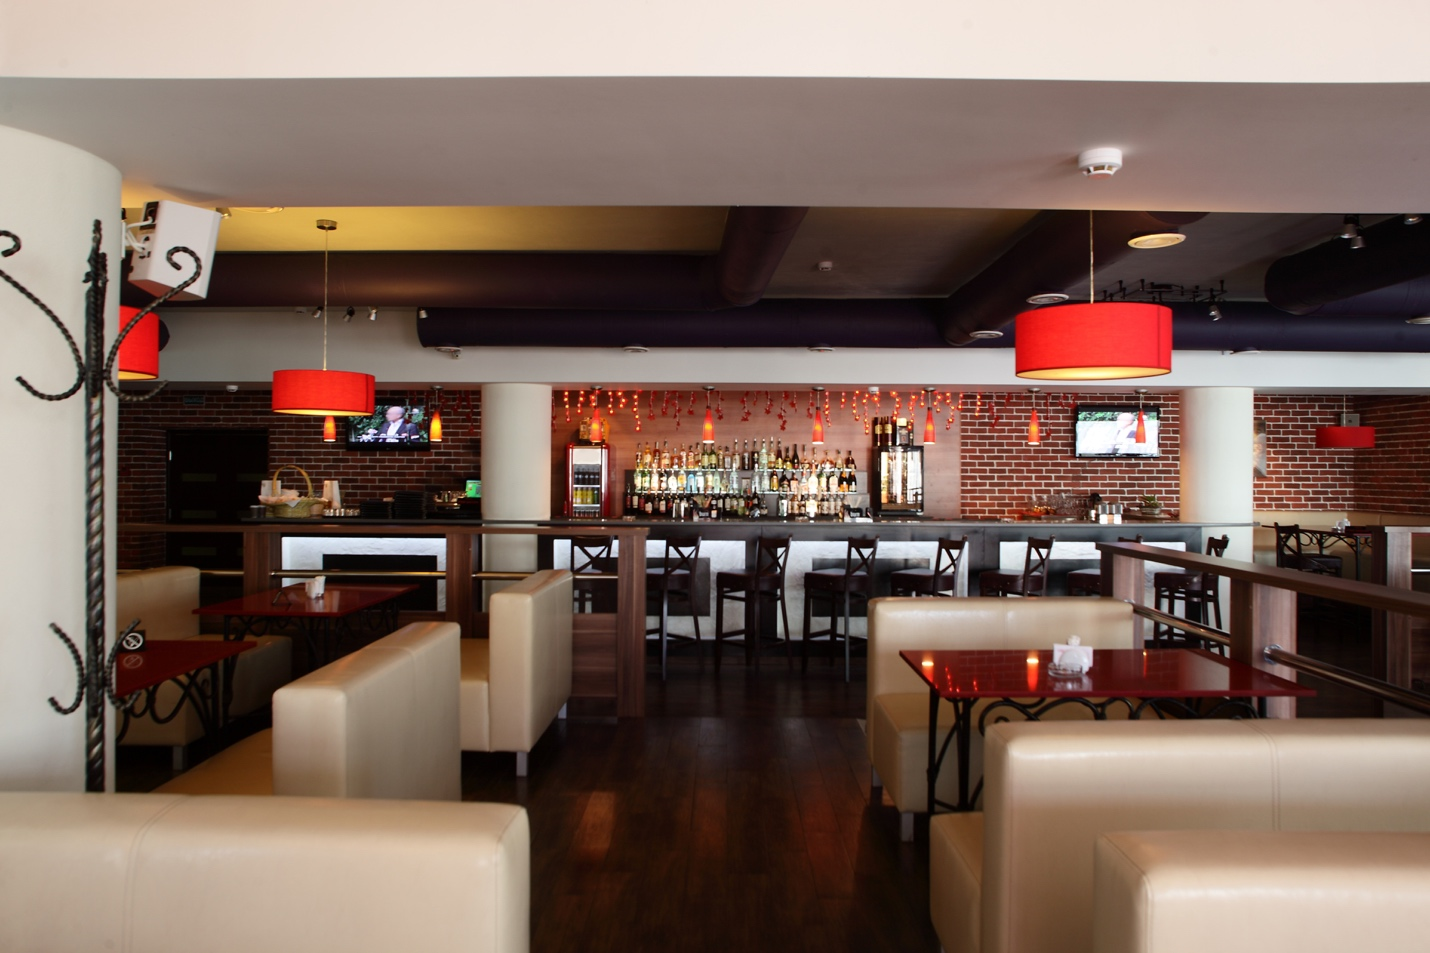 Use Commercial Audio Video to Boost Your Restaurant's Profits